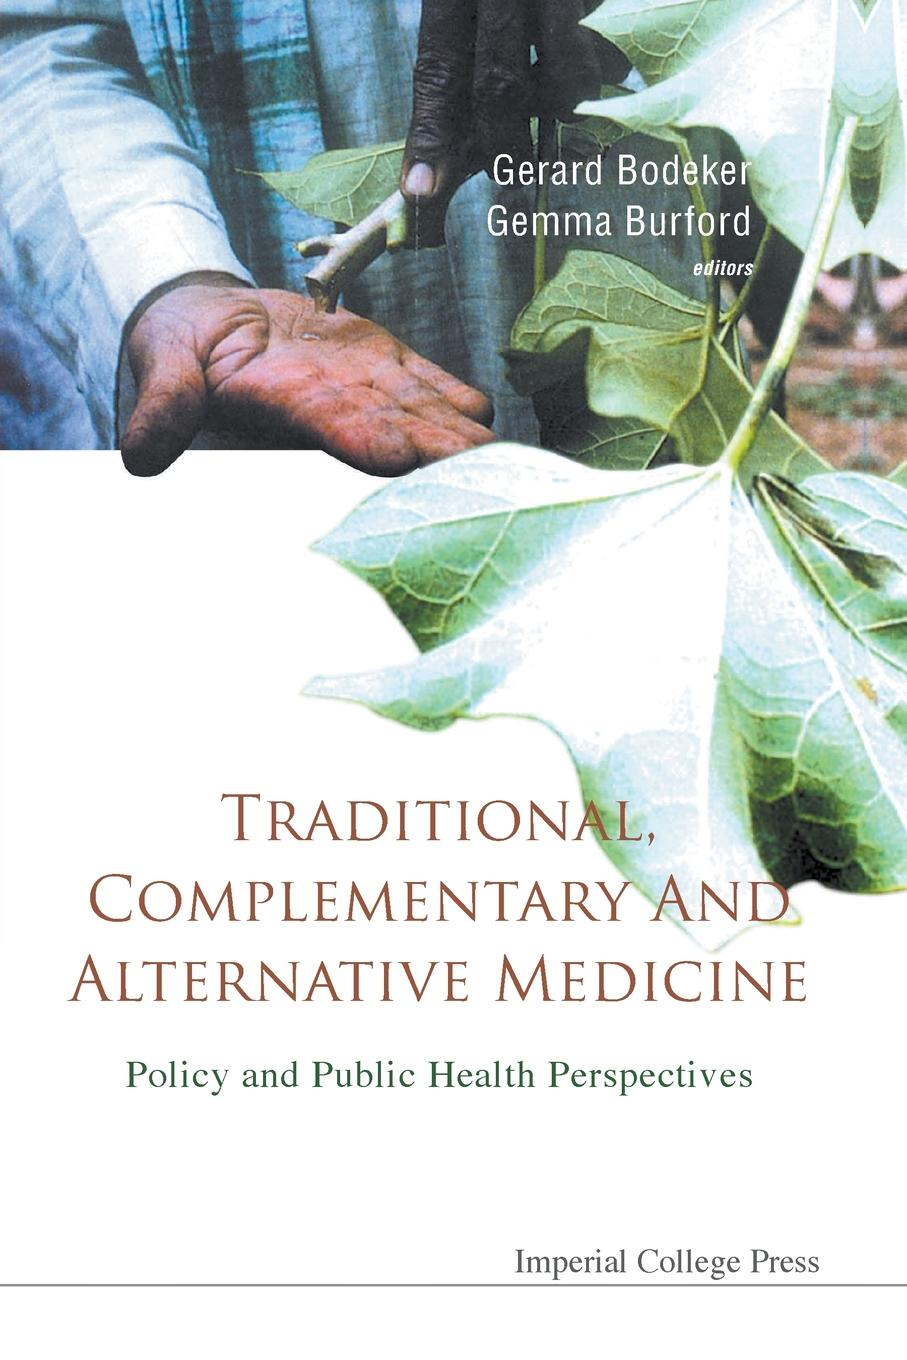 TRADITIONAL, COMPLEMENTARY AND ALTERNATIVE MEDICINE. POLICY AND PUBLIC HEALTH PERSPECTIVES dhrubajyoti bhattacharya public health policy issues theories and advocacy